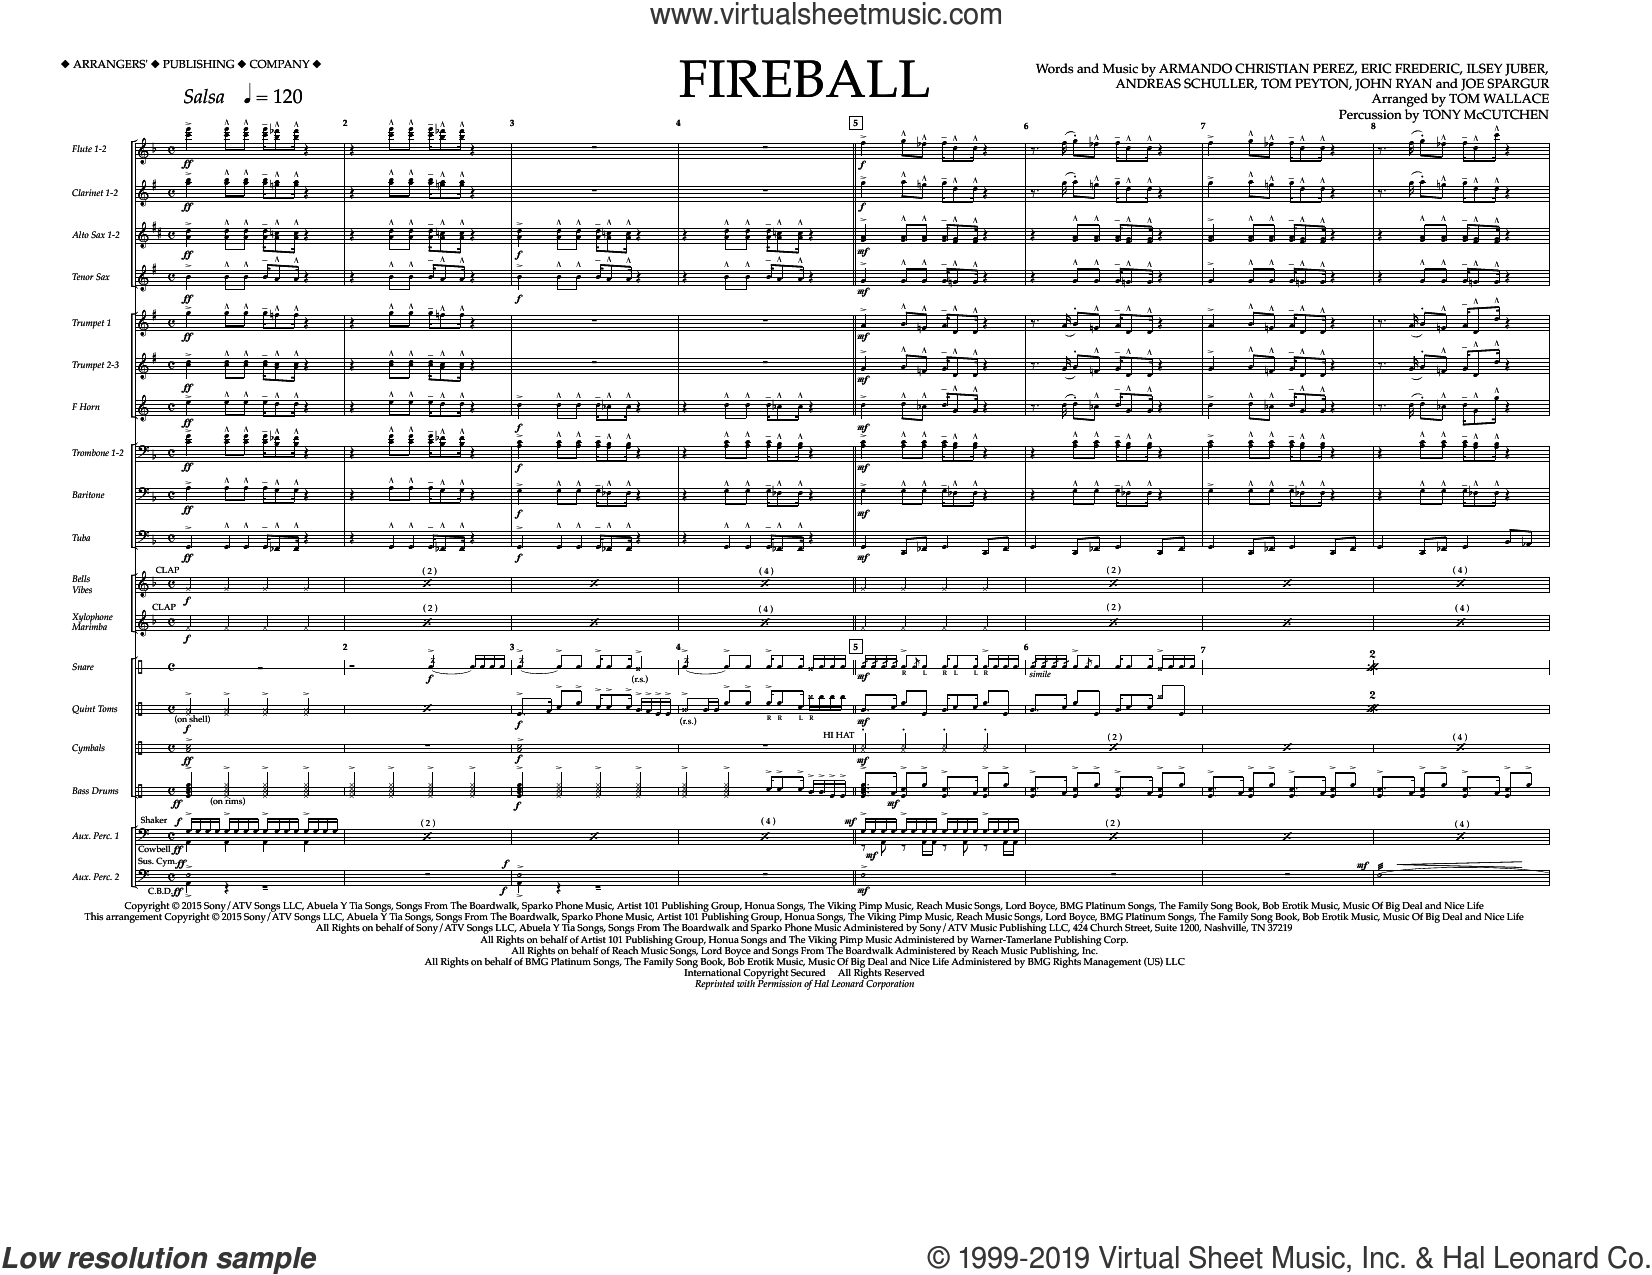 Fireball (COMPLETE) sheet music for marching band by Tom Wallace, Andreas Schuller, Armando Perez, Eric Frederic, Ilsey Juber, John Ryan, Joseph Spargur, Pitbull feat. John Ryan and Tom Peyton, intermediate skill level